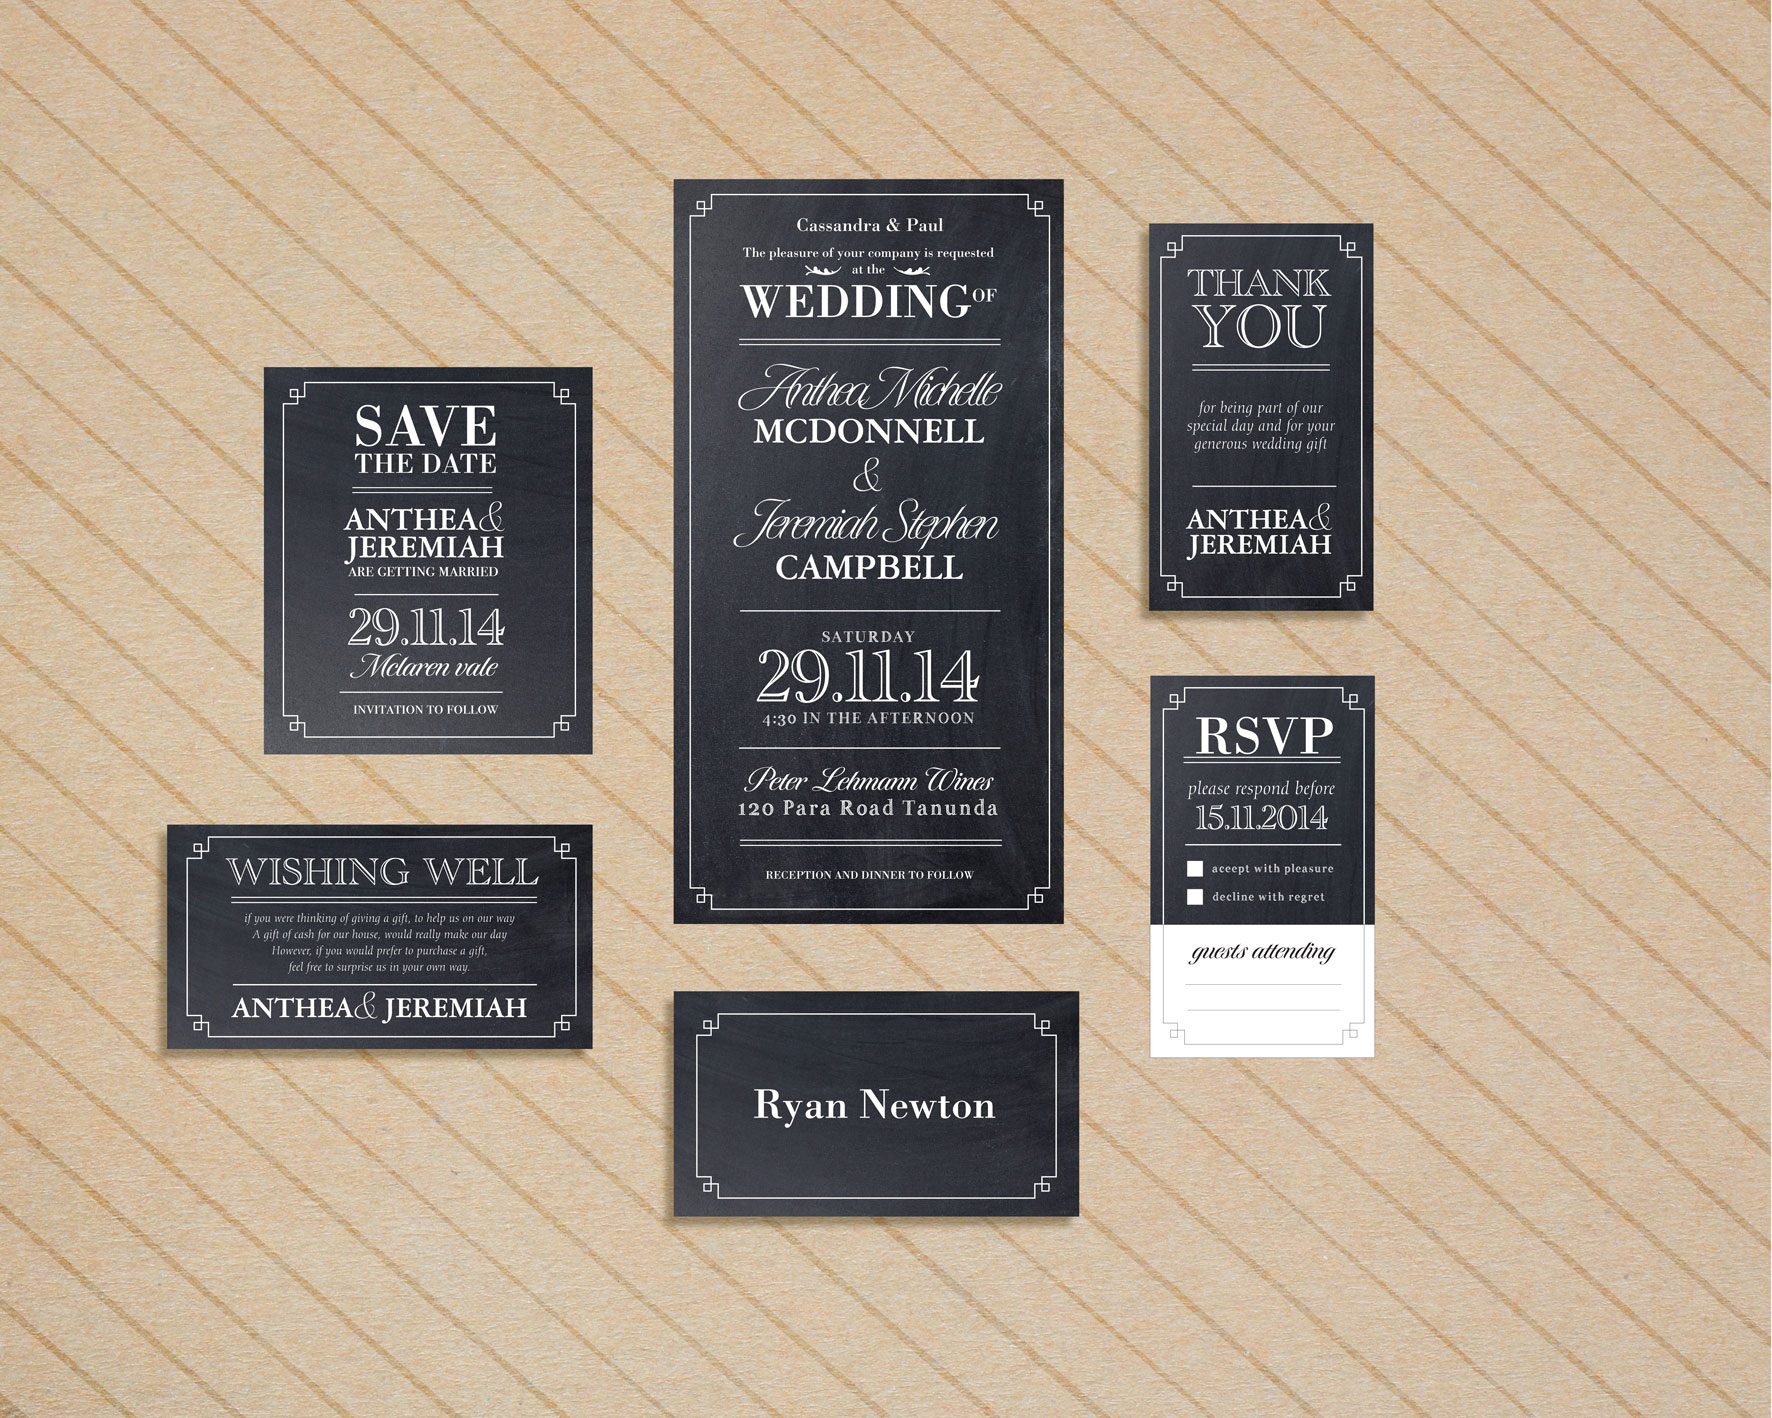 Chalkboard Wedding Invitations: Our New Wedding Invitations Designs Are Here!!!!